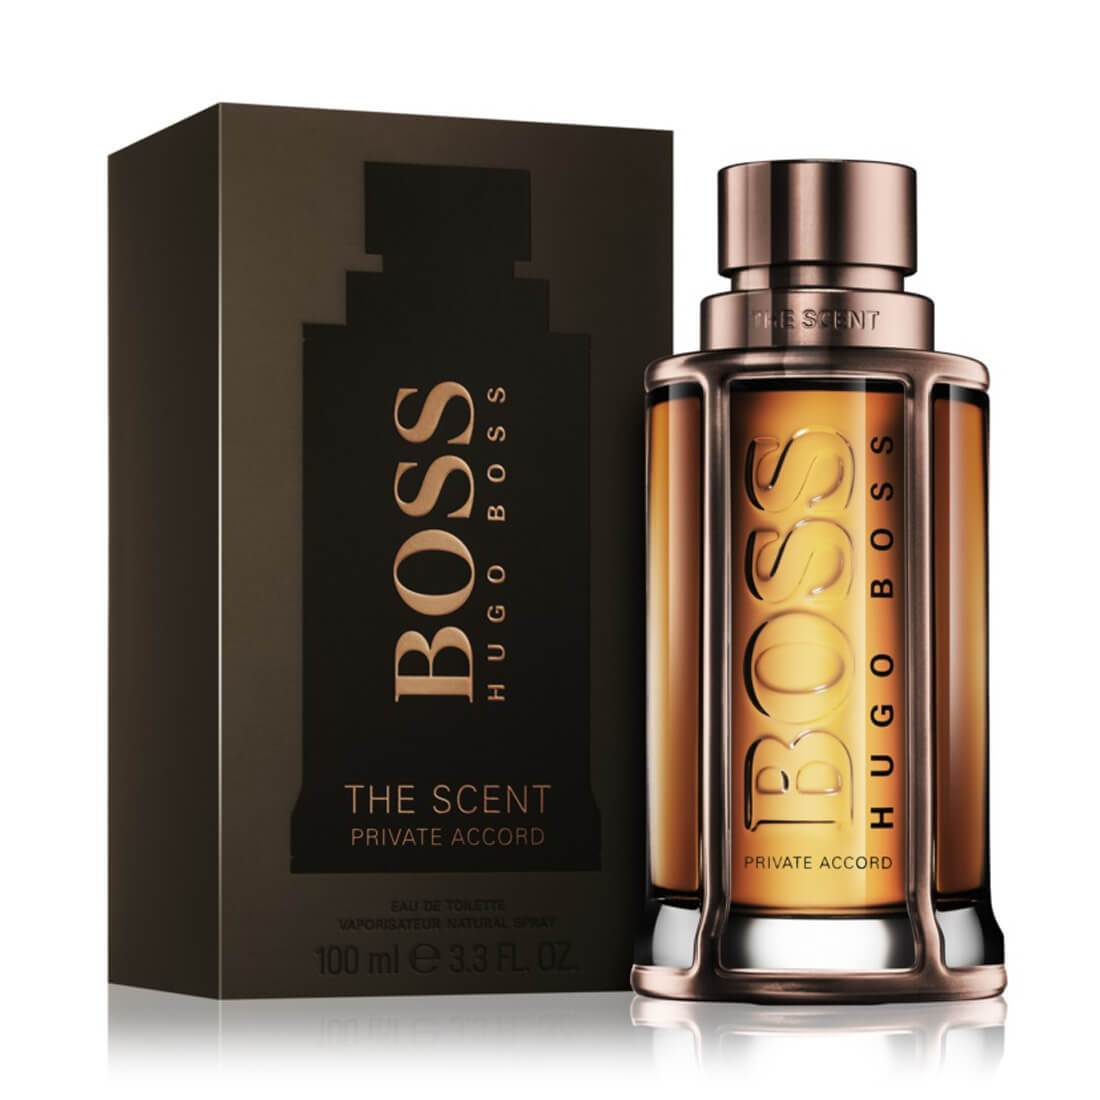 Hugo Boss The Scent Men Private Accord Perfume 100ml Fridaycharmcom